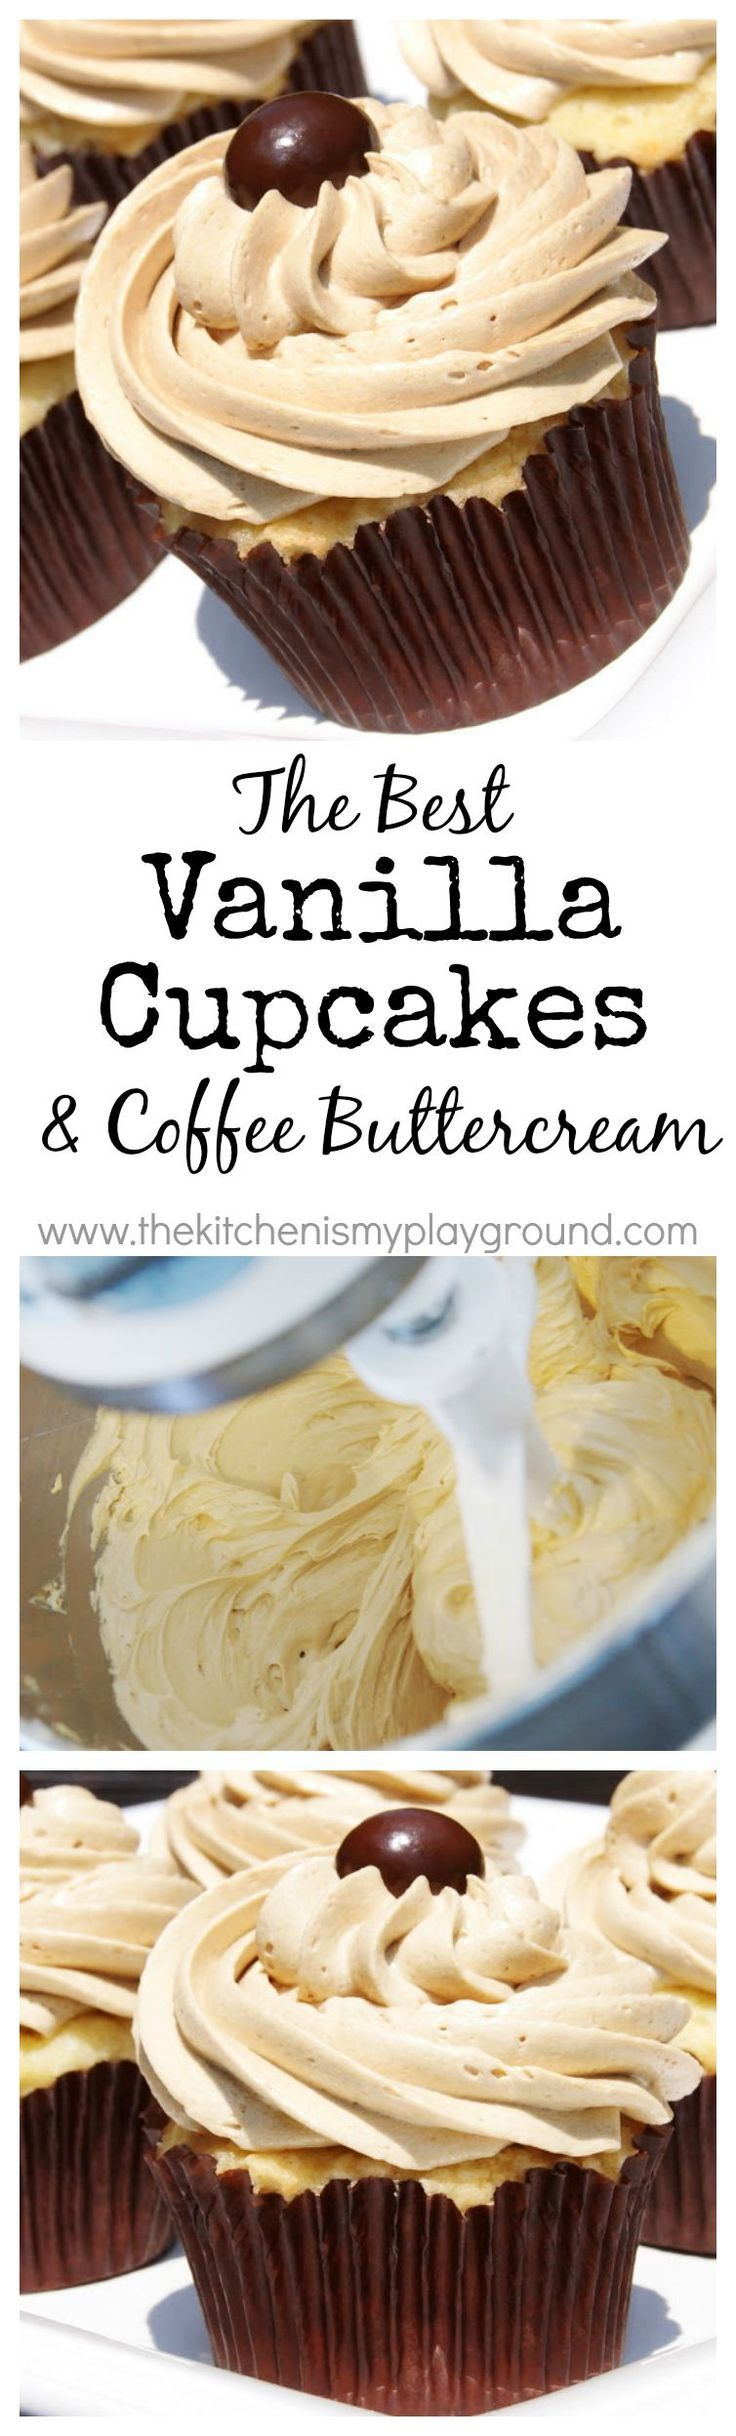 The BEST Vanilla Cupcake & the BEST Coffee Buttercream Frosting.  Yum! www.thekitc